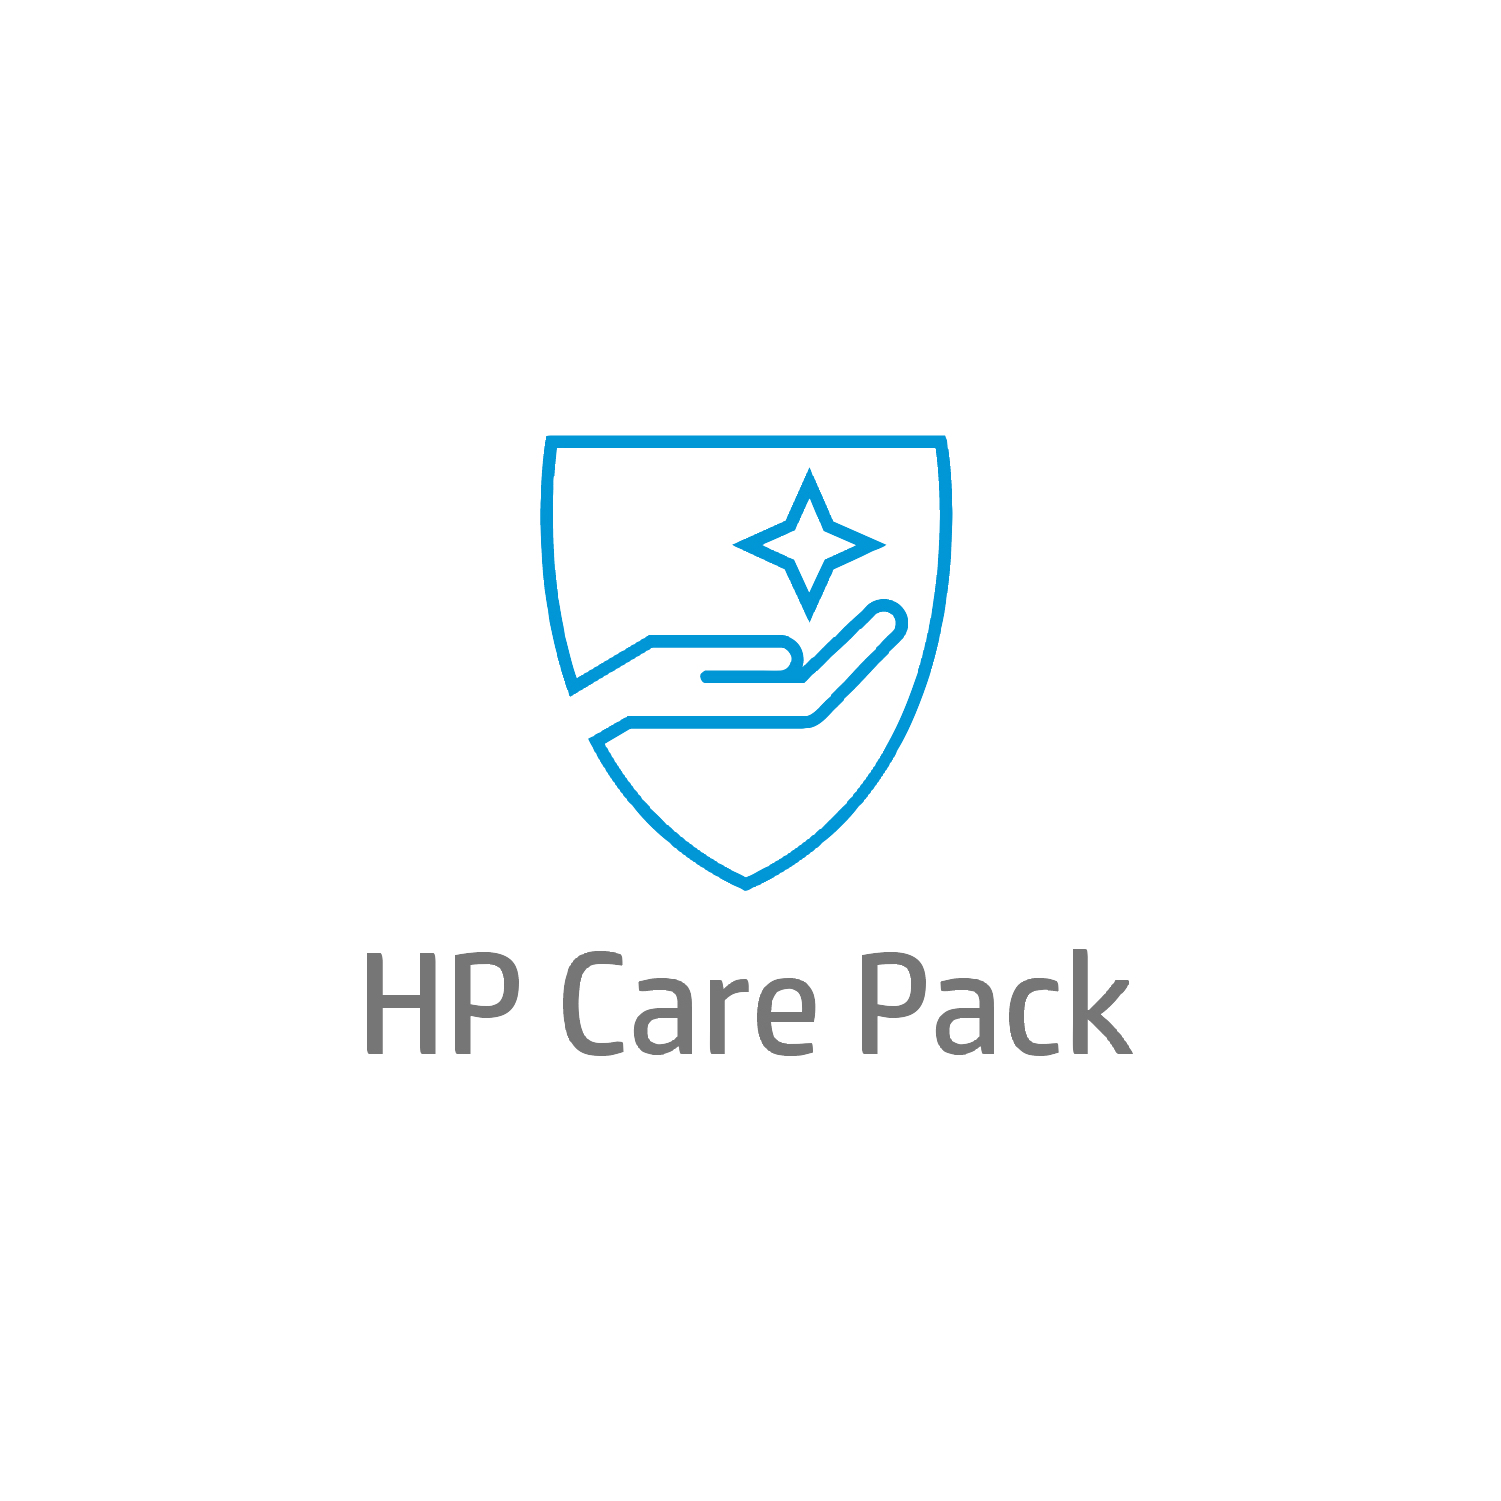 HP 2 Year Absolute Resilience - 10000-49999 Unit Volume Service